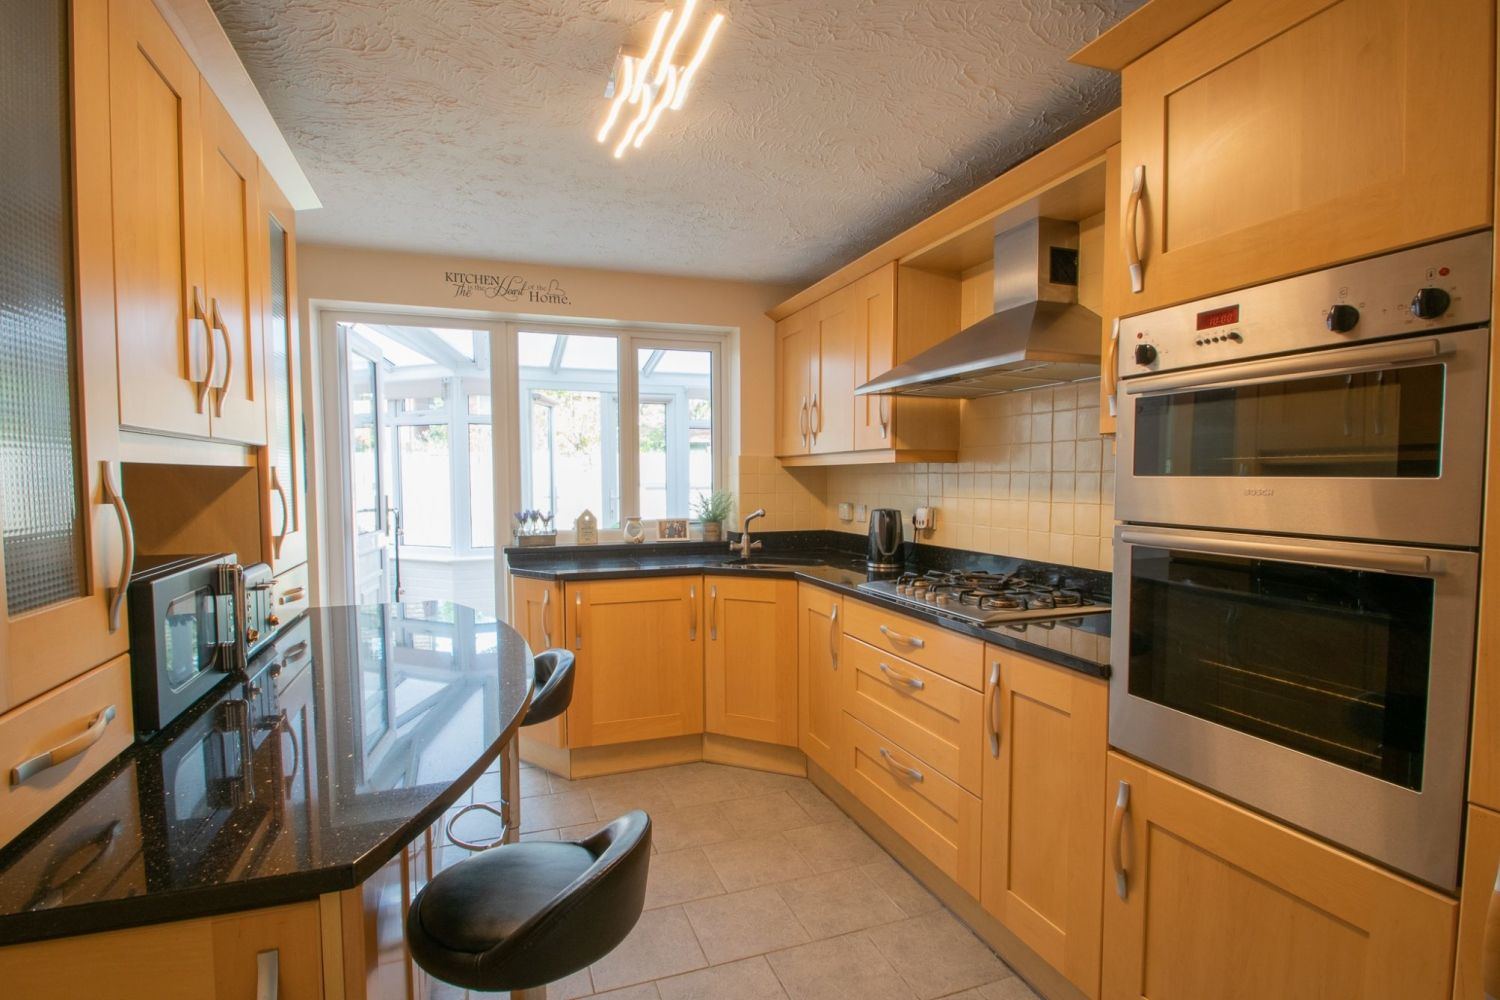 3 bed detached for sale in Batchelor Close, Amblecote 5